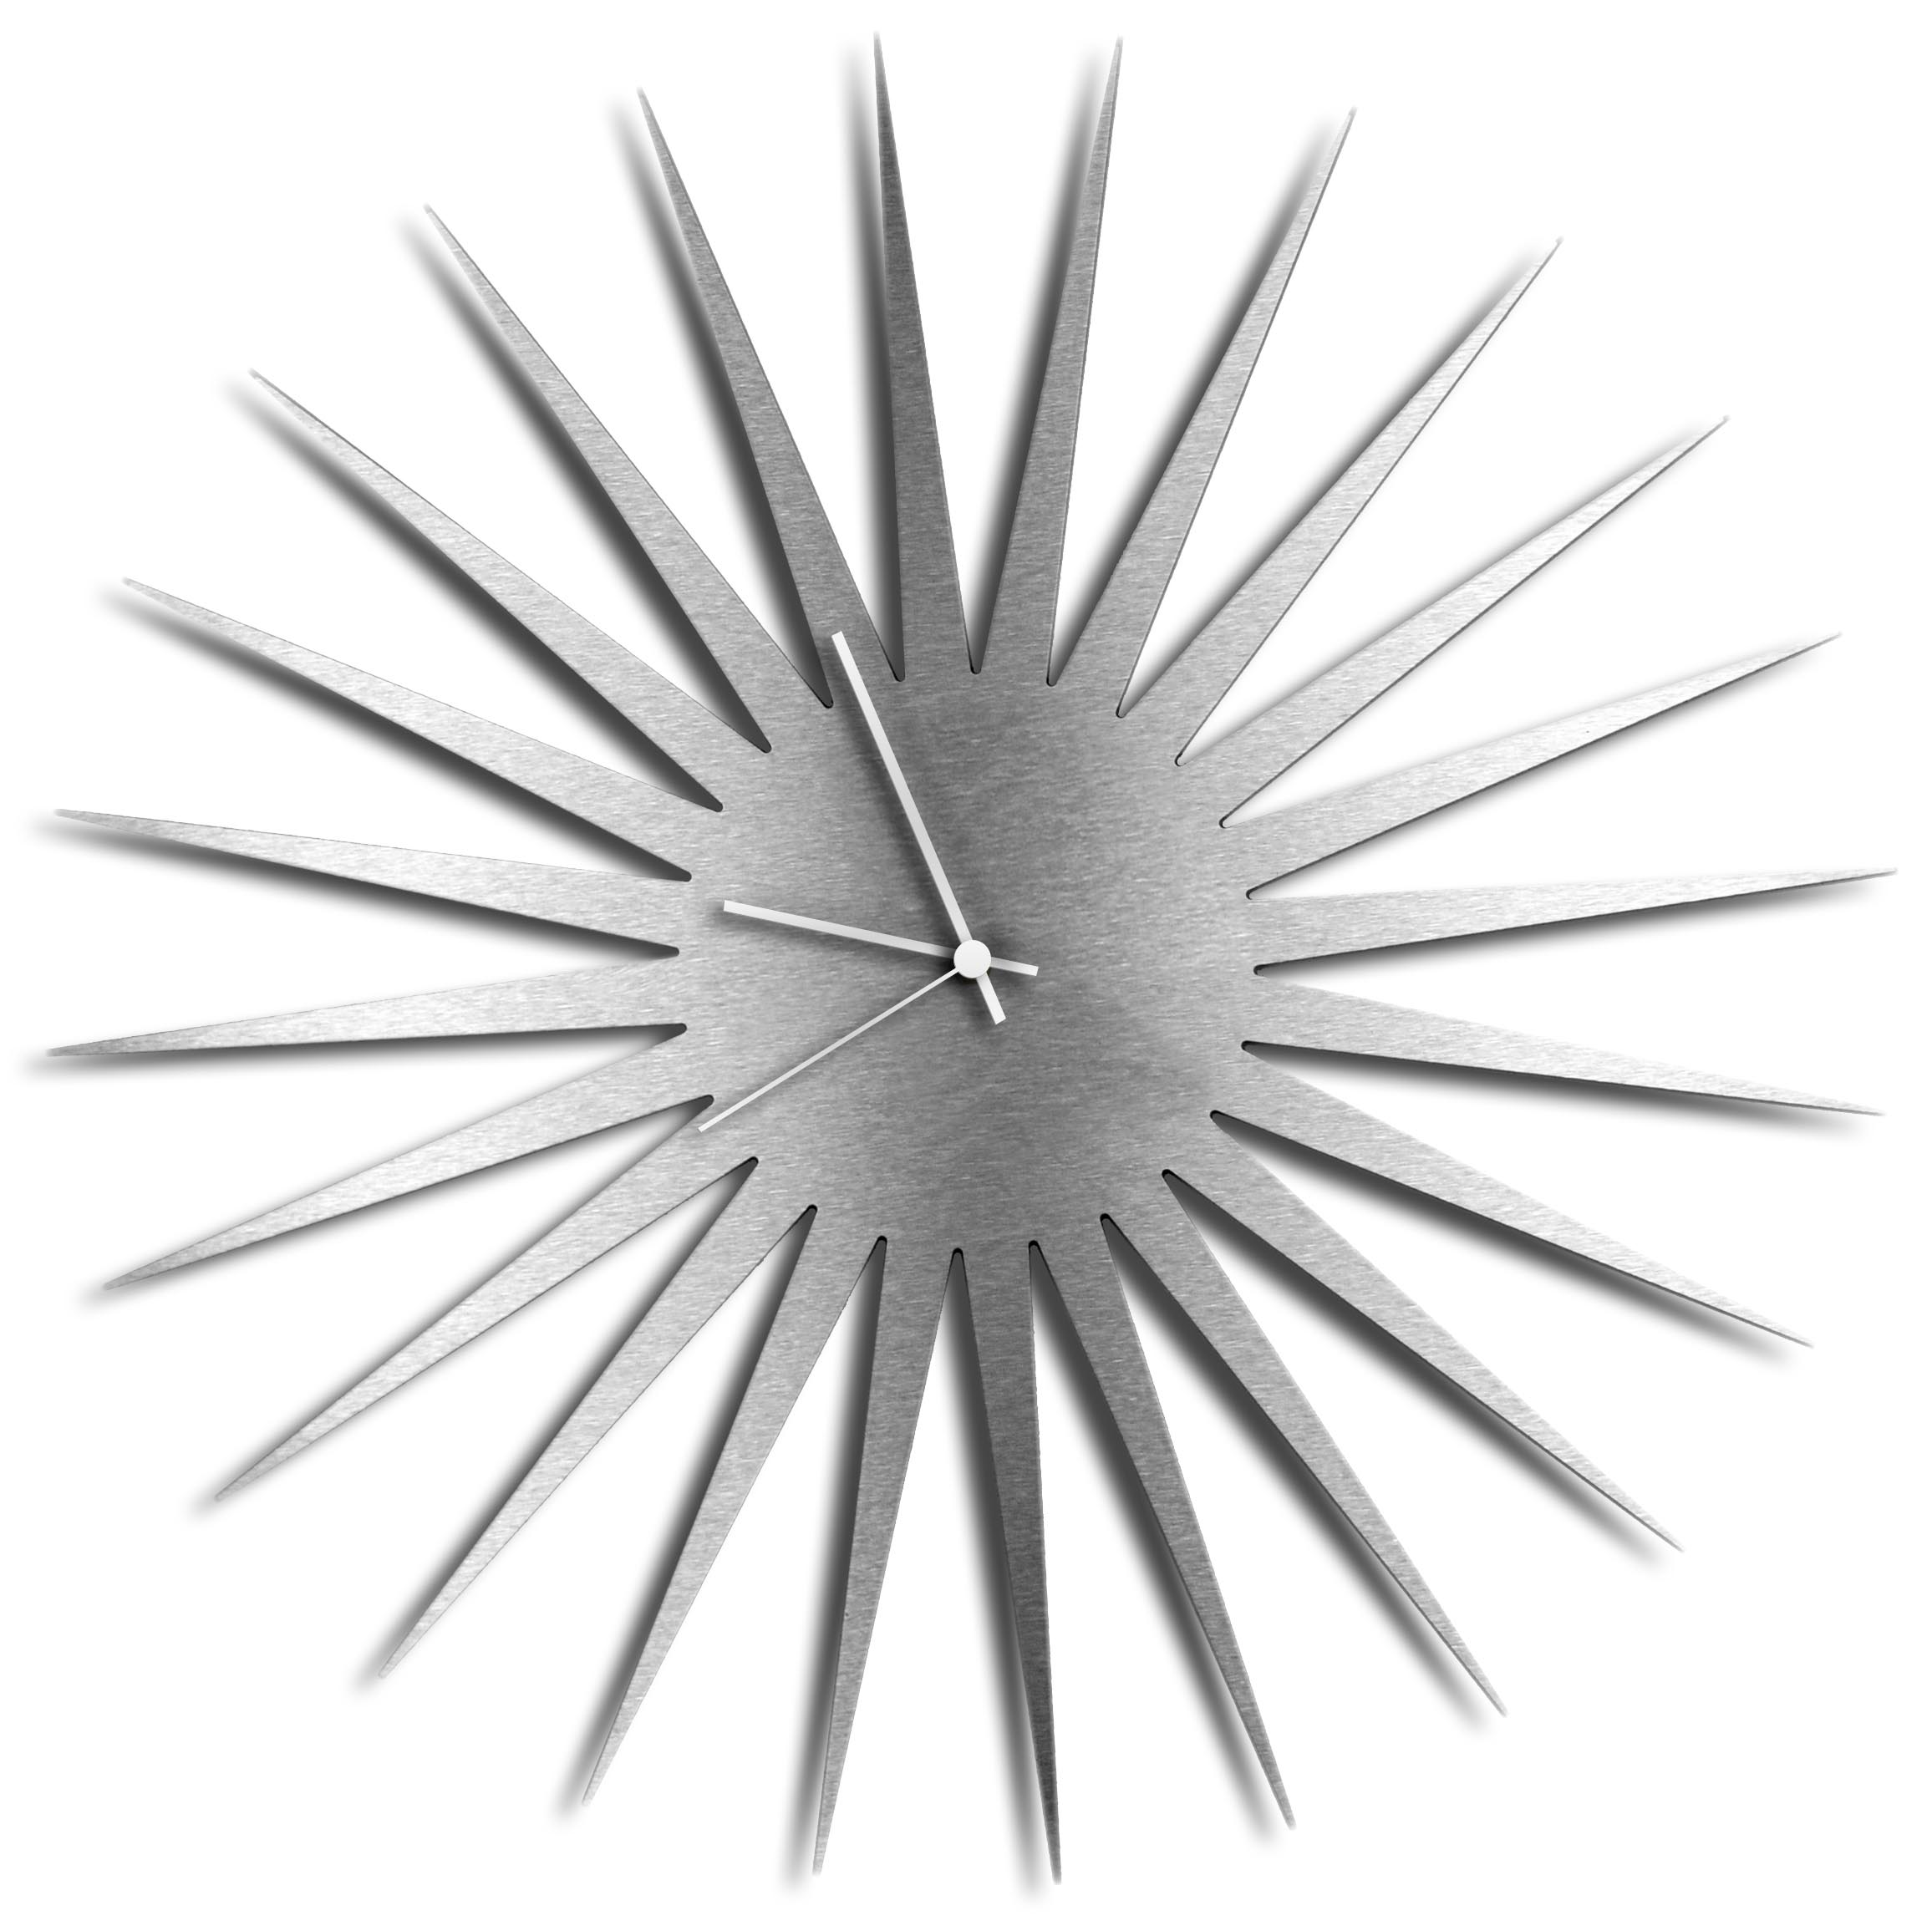 MCM Starburst Clock - Silver by Adam Schwoeppe - Midcentury Modern Wall Clock - Alternate View 1